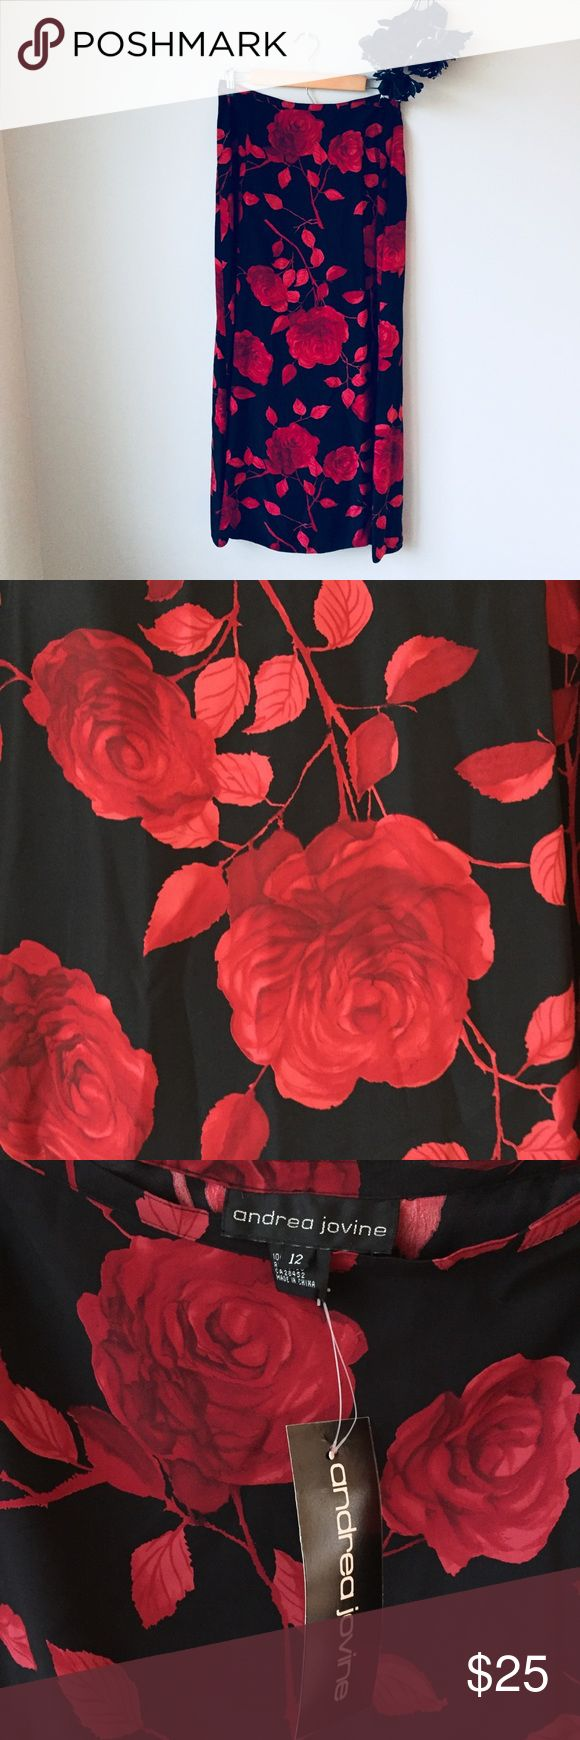 Silk red and black floral maxi skirt NEW WITH TAGS. Andria Jovine brand red and black floral printed maxi skirt. The tag says size 12 but it fits like a medium.  100% silk Andrea Jovine Skirts Maxi